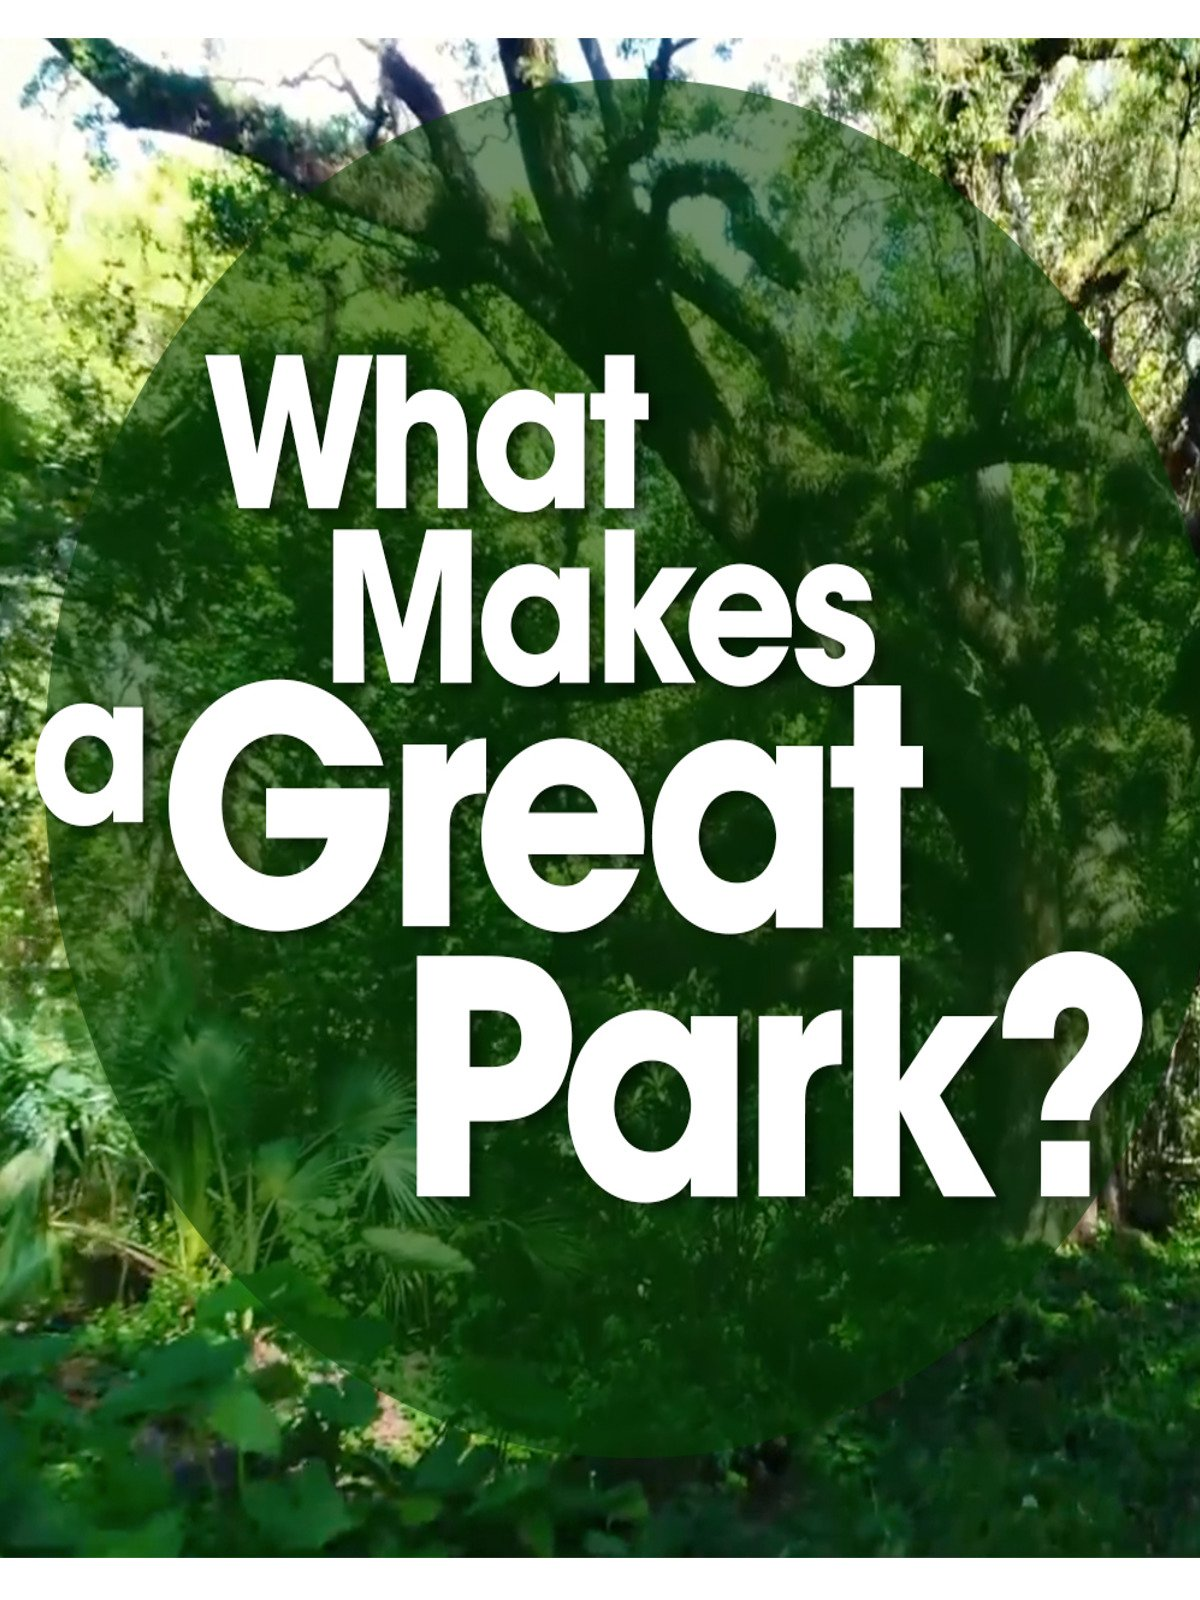 What Makes a Great Park?